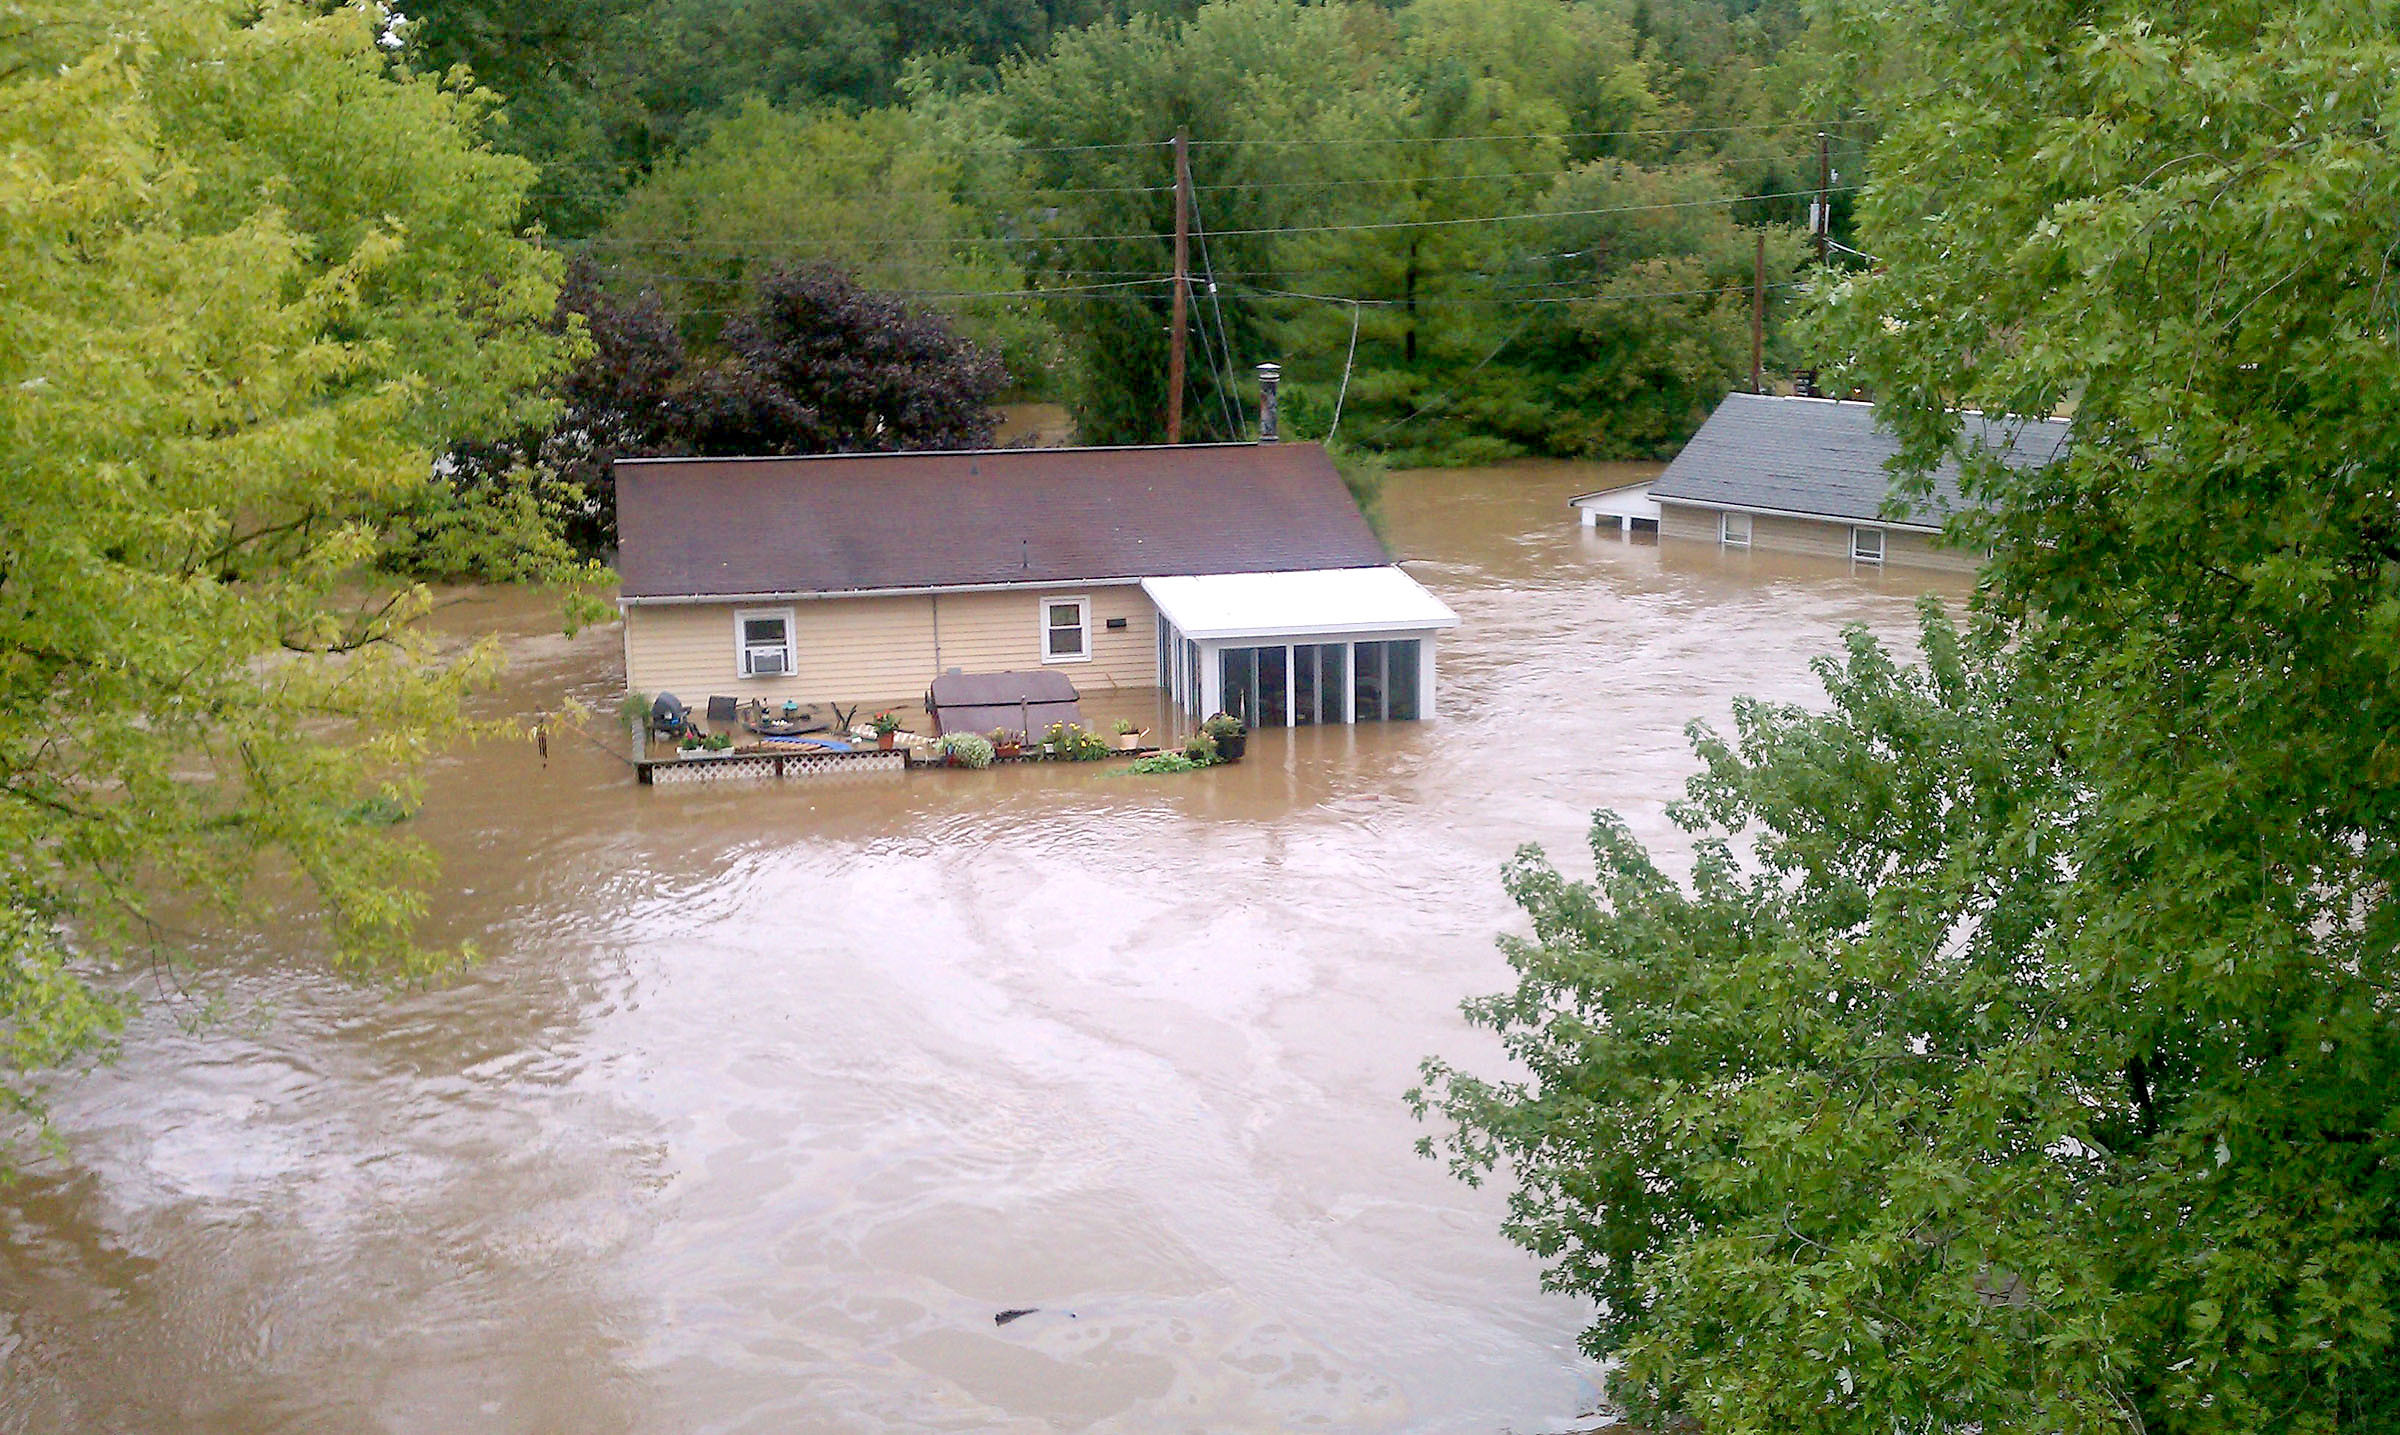 Press And Journal photo by Debra Schell: Flood waters in Middletown, Sept. 7,  2011.